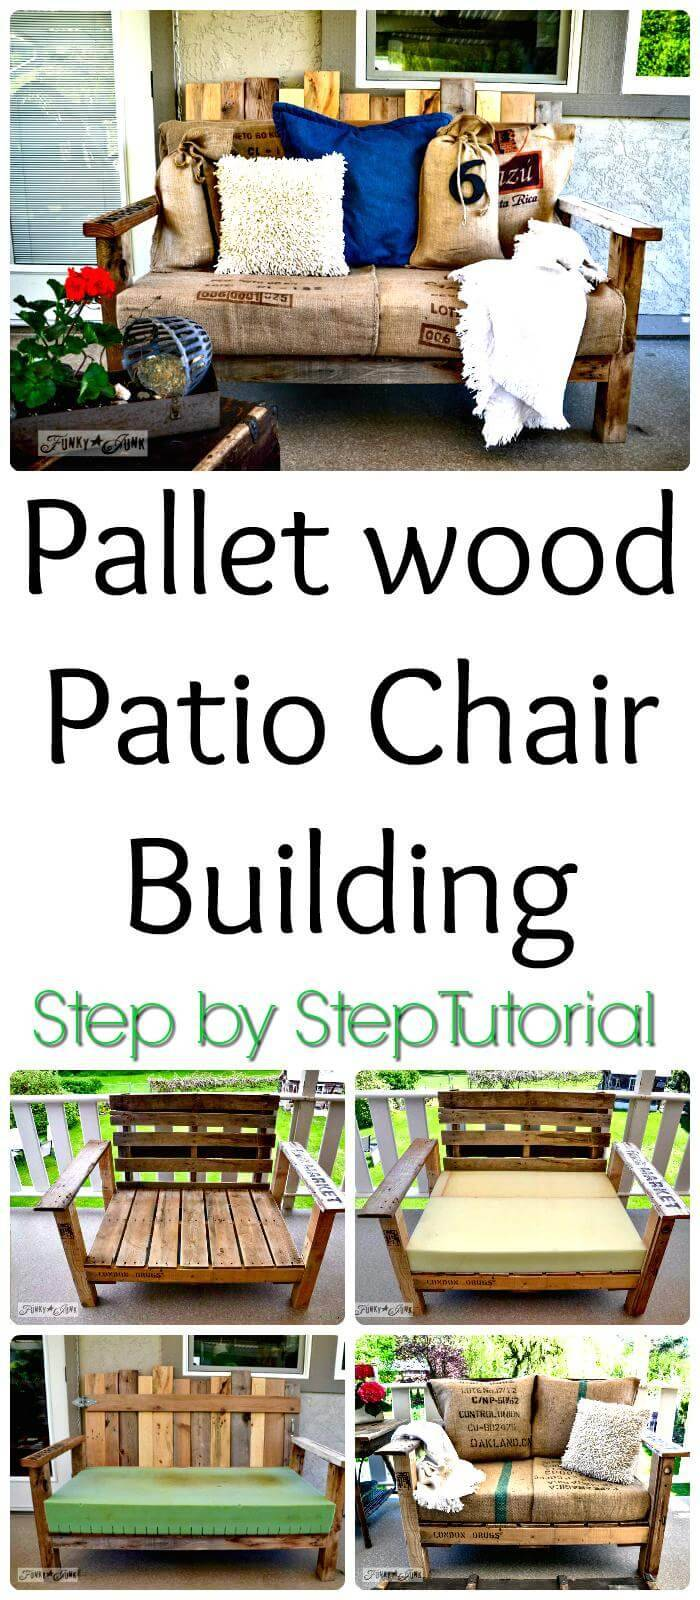 How to Build a Pallet Patio Chair